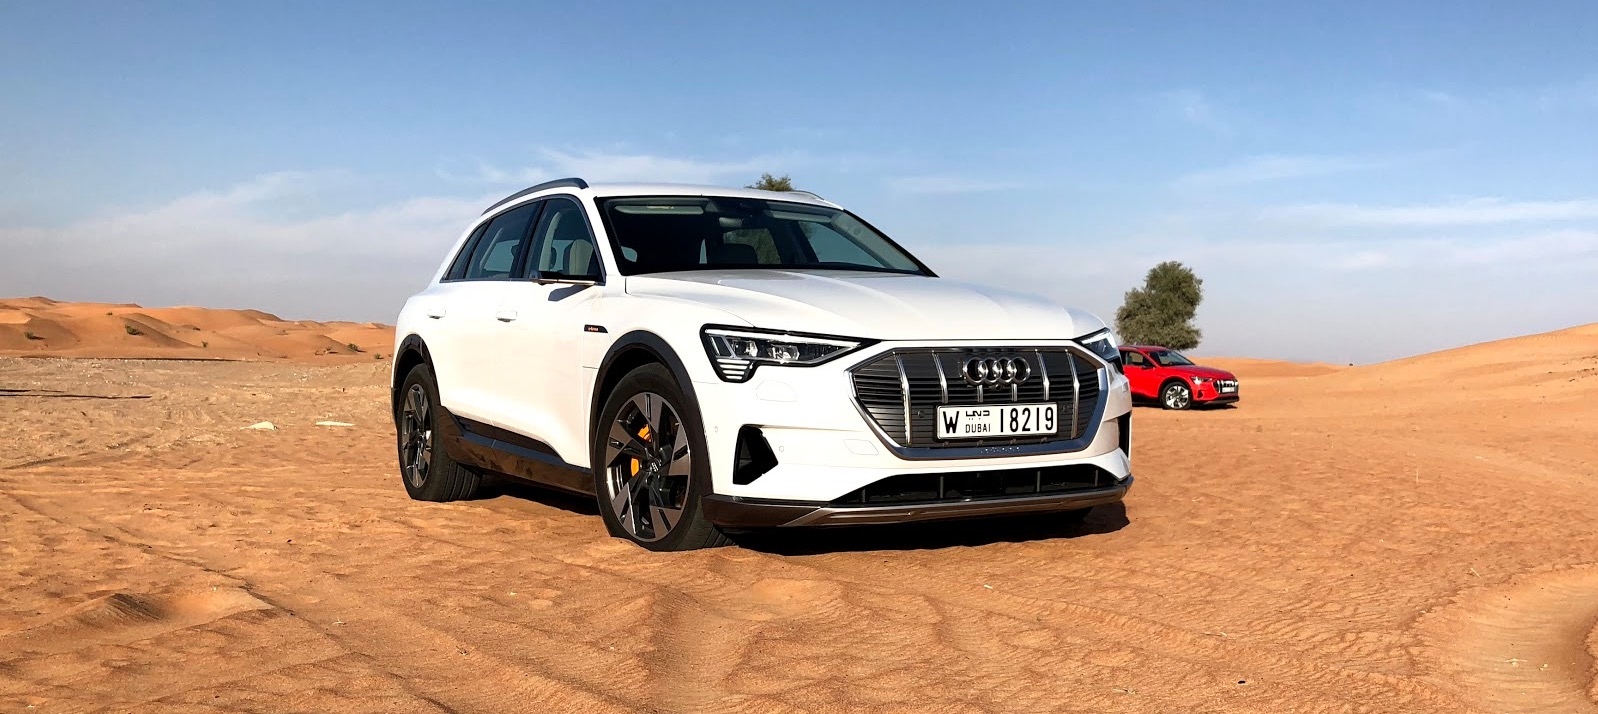 audi e tron first drive review a solid electric suv. Black Bedroom Furniture Sets. Home Design Ideas